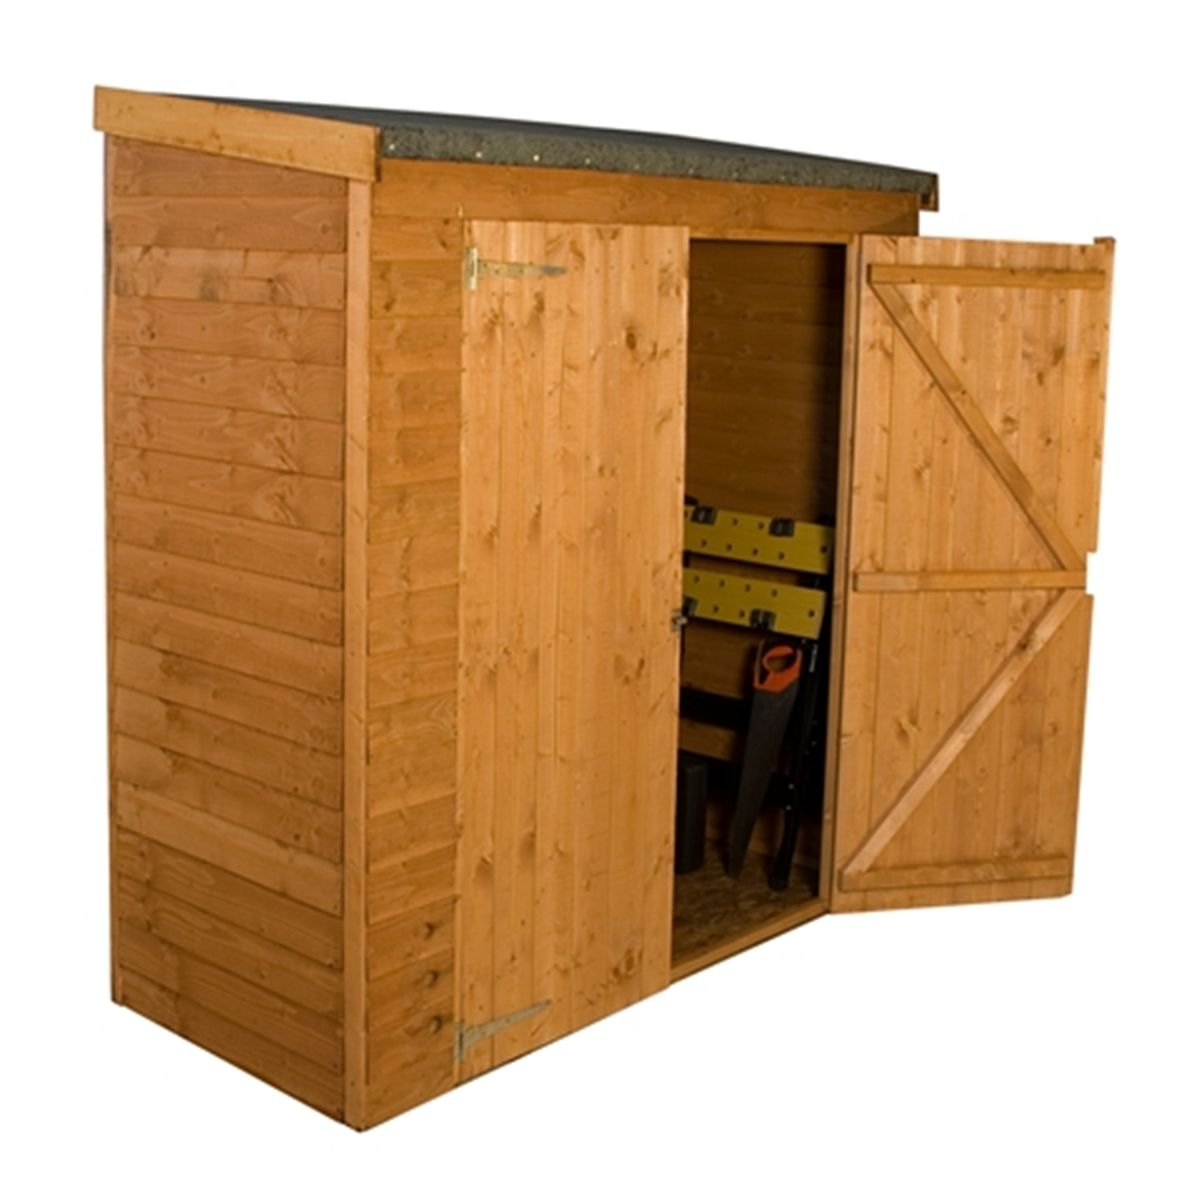 Merveilleux 6 X 2u00276 Value Pent Storage Shed